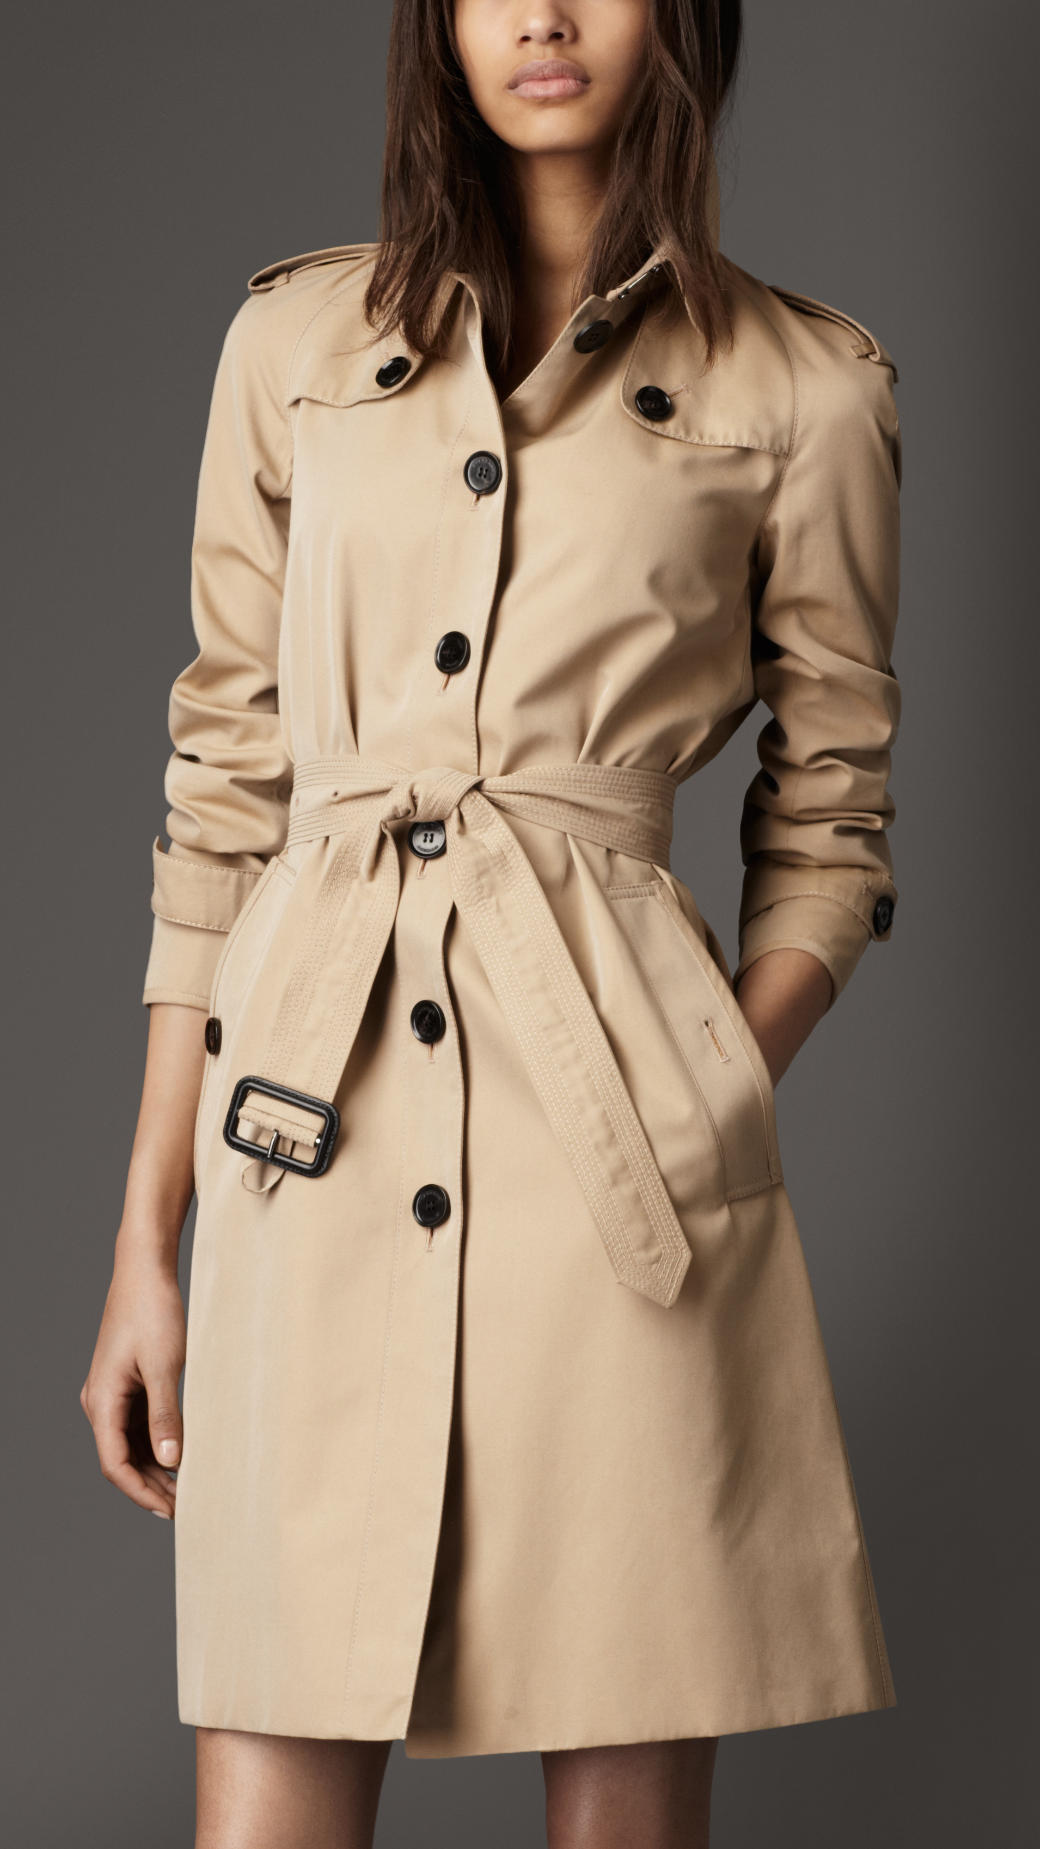 lyst burberry long cotton gabardine trench coat in natural. Black Bedroom Furniture Sets. Home Design Ideas